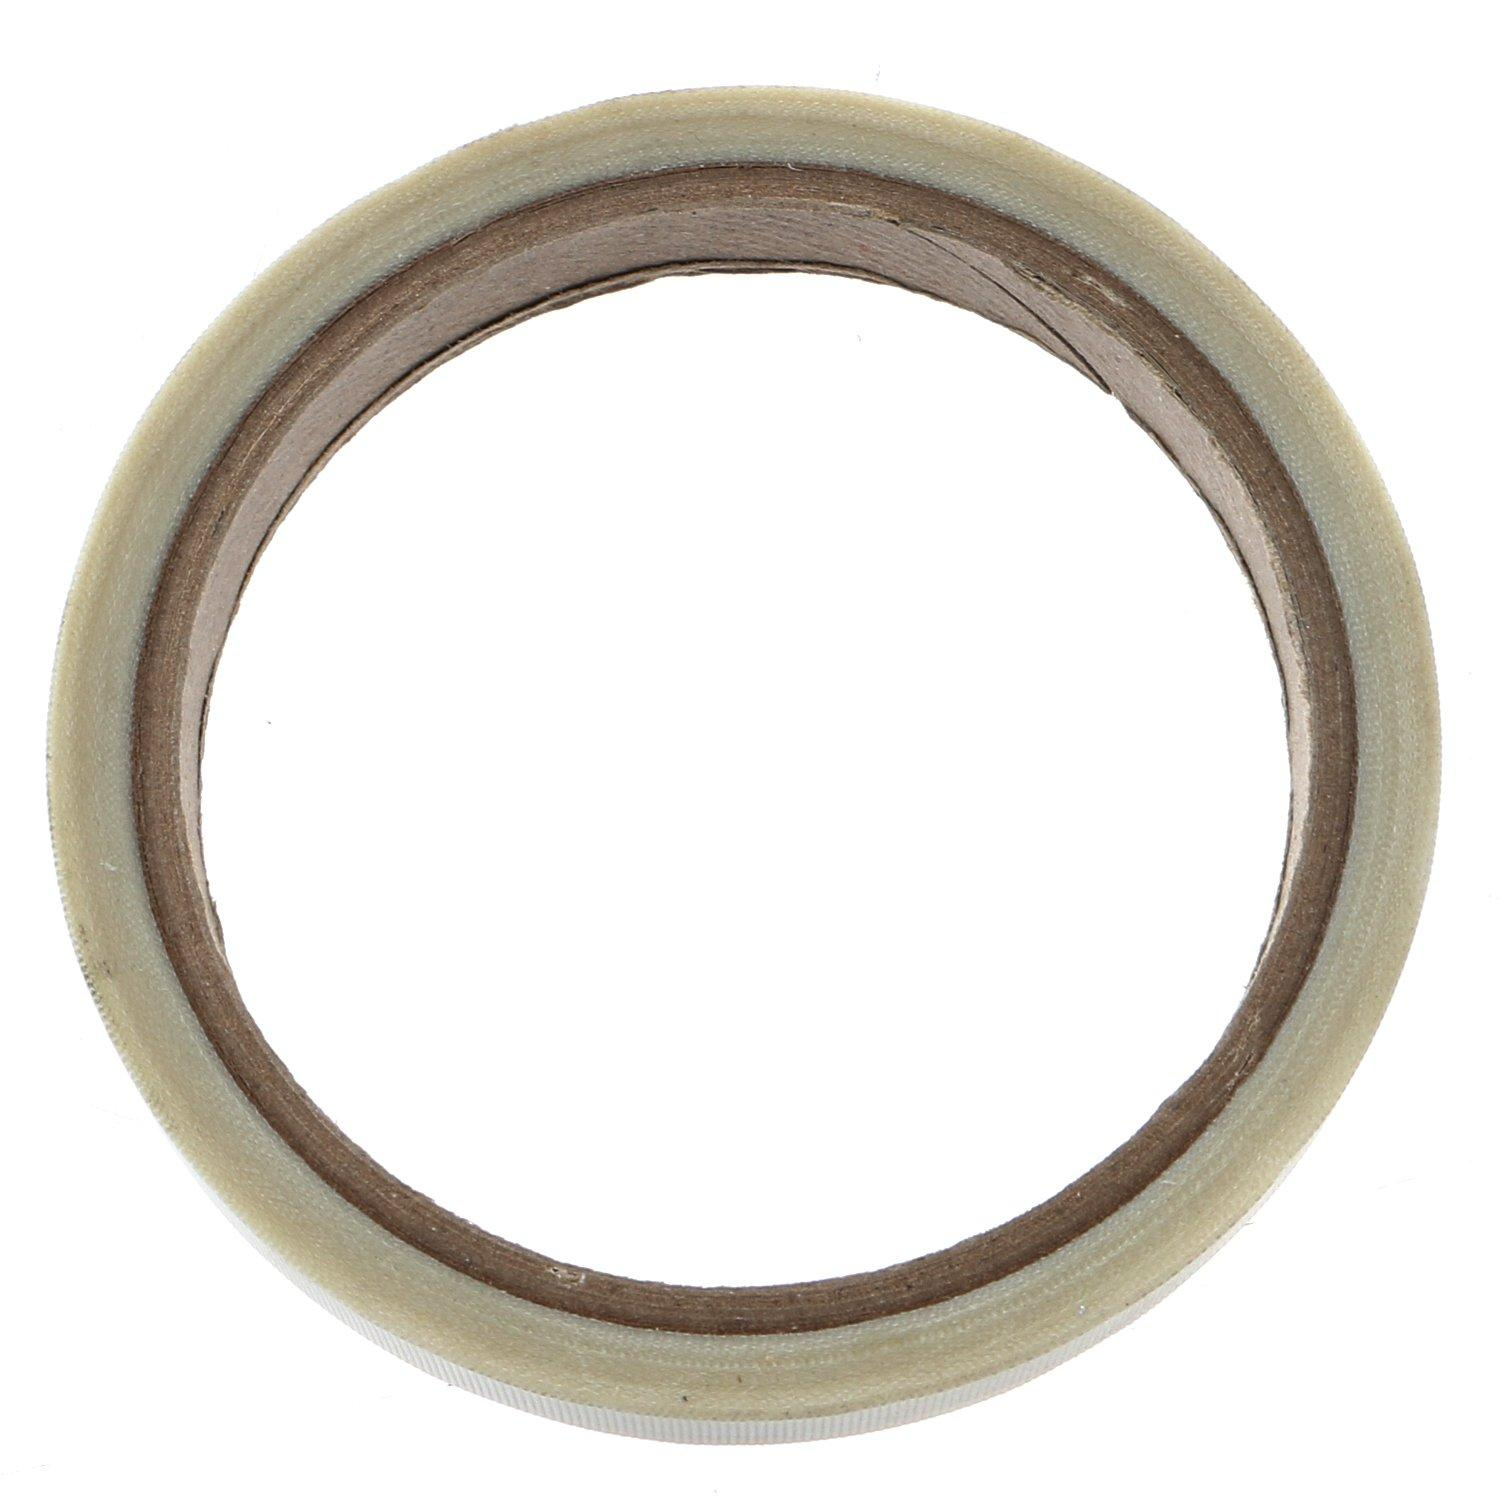 "ALTO-SHAAM TAPE,HI-TEMP,INSULATE,1/2""10"